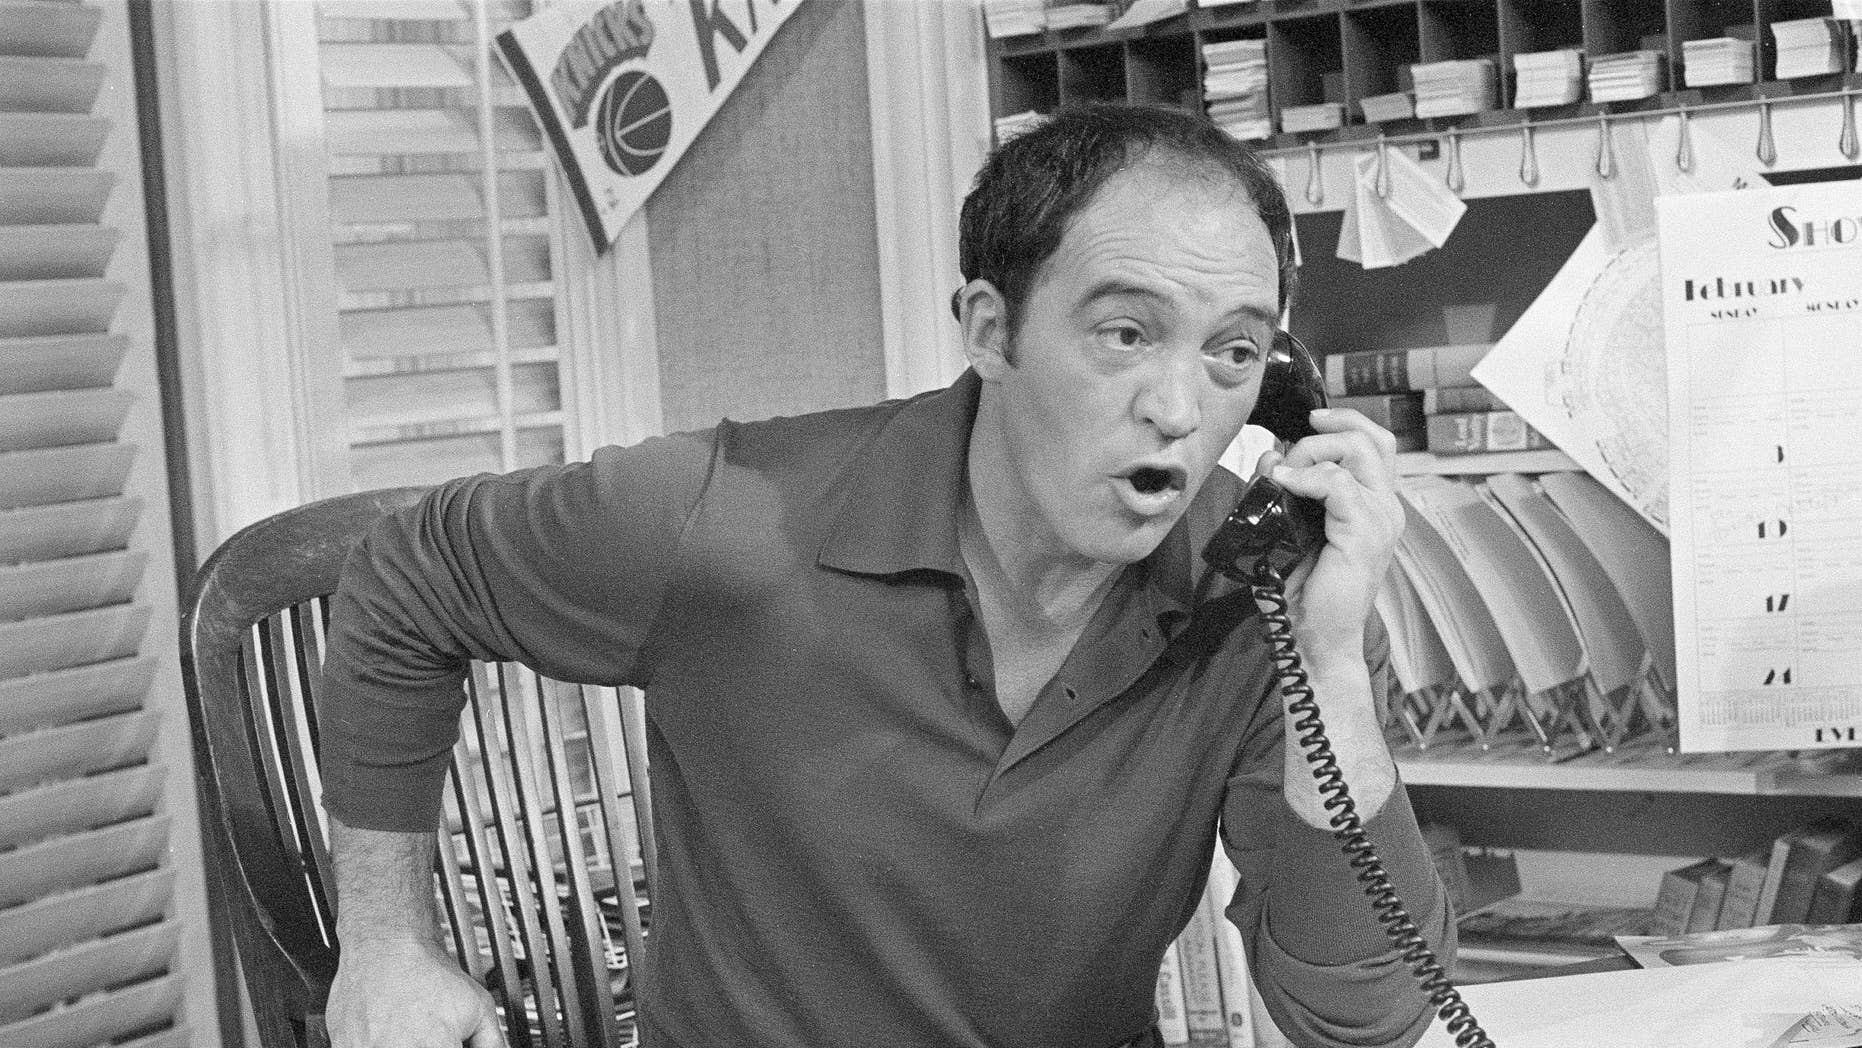 """In this March 18, 1980 file photo, actor Joe Santos appears on the set of the NBC-TV comedy series """"Me and Maxx,"""" in Los Angeles. AP"""